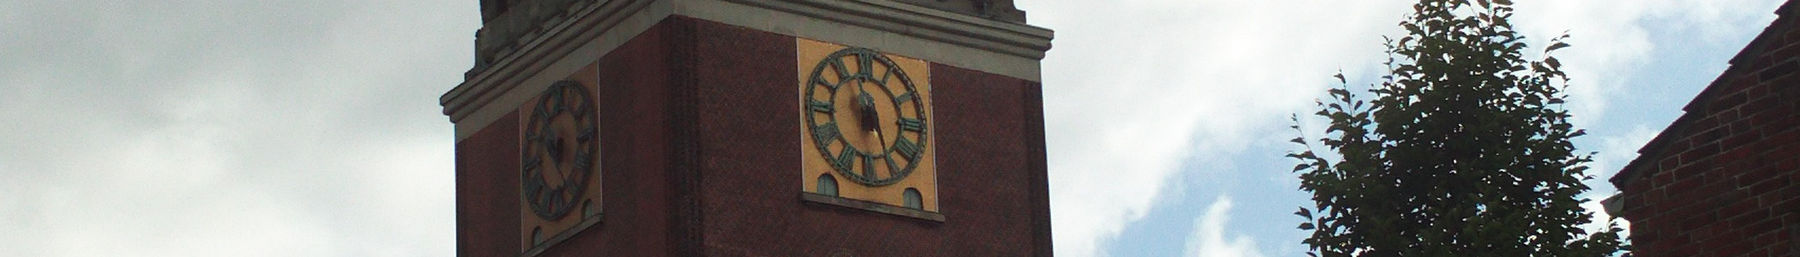 Kiel banner Clock tower.jpg